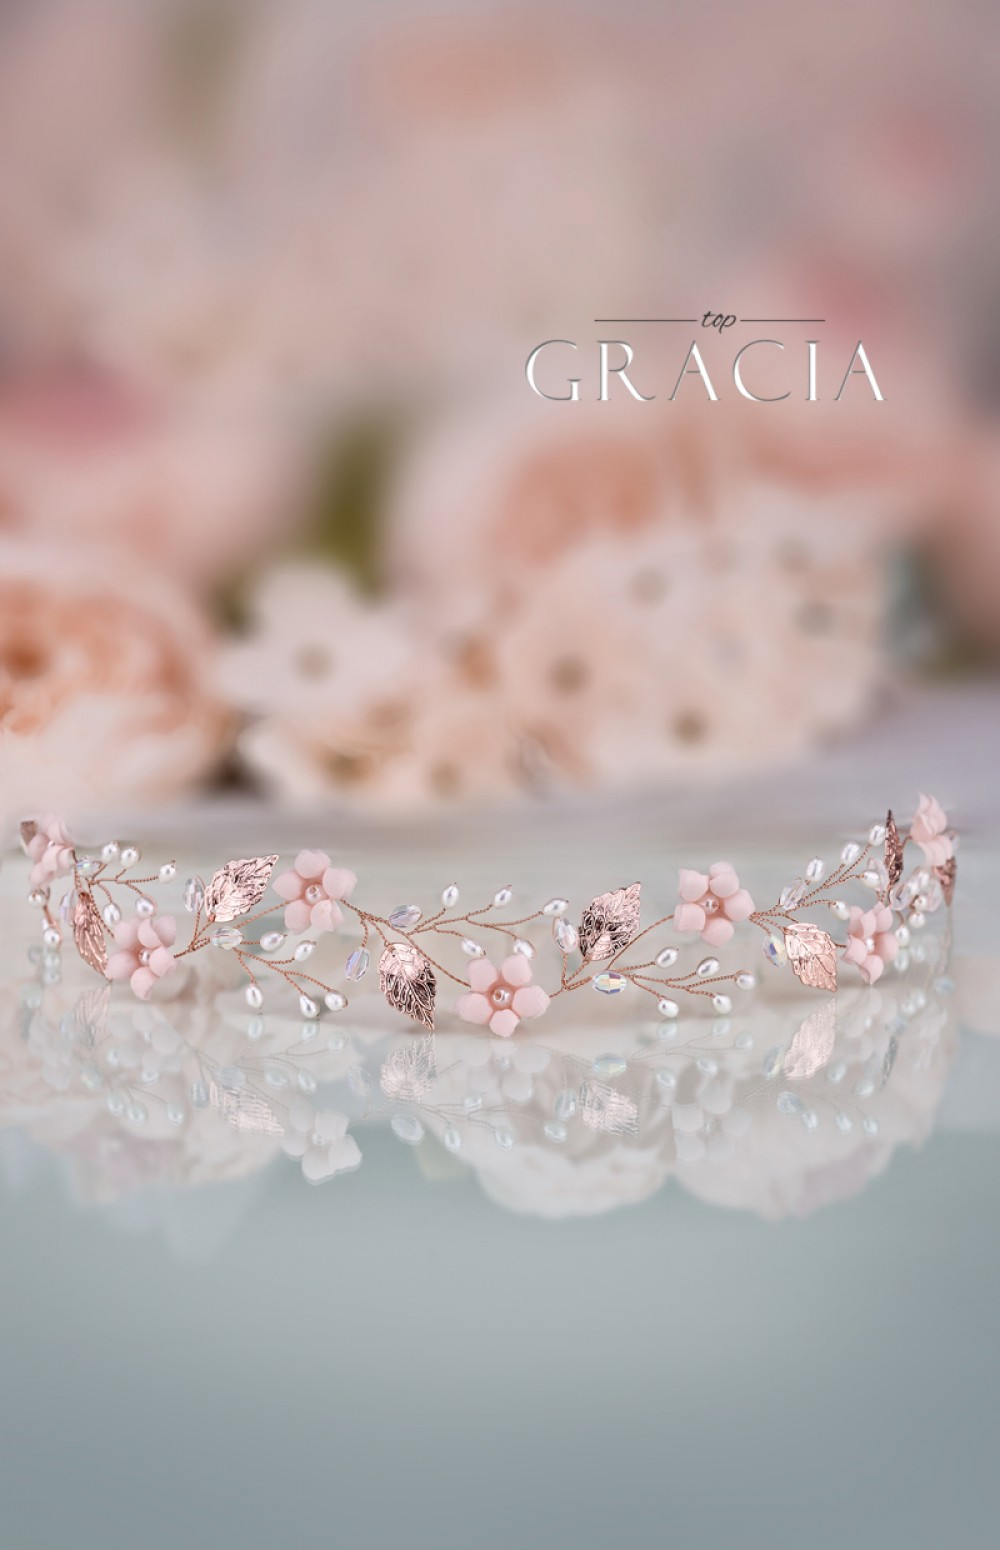 7d8d56b7520 KORE Blush Rose Gold Bridal Flower Tiara Crown Flower Girl Headband by  TopGracia